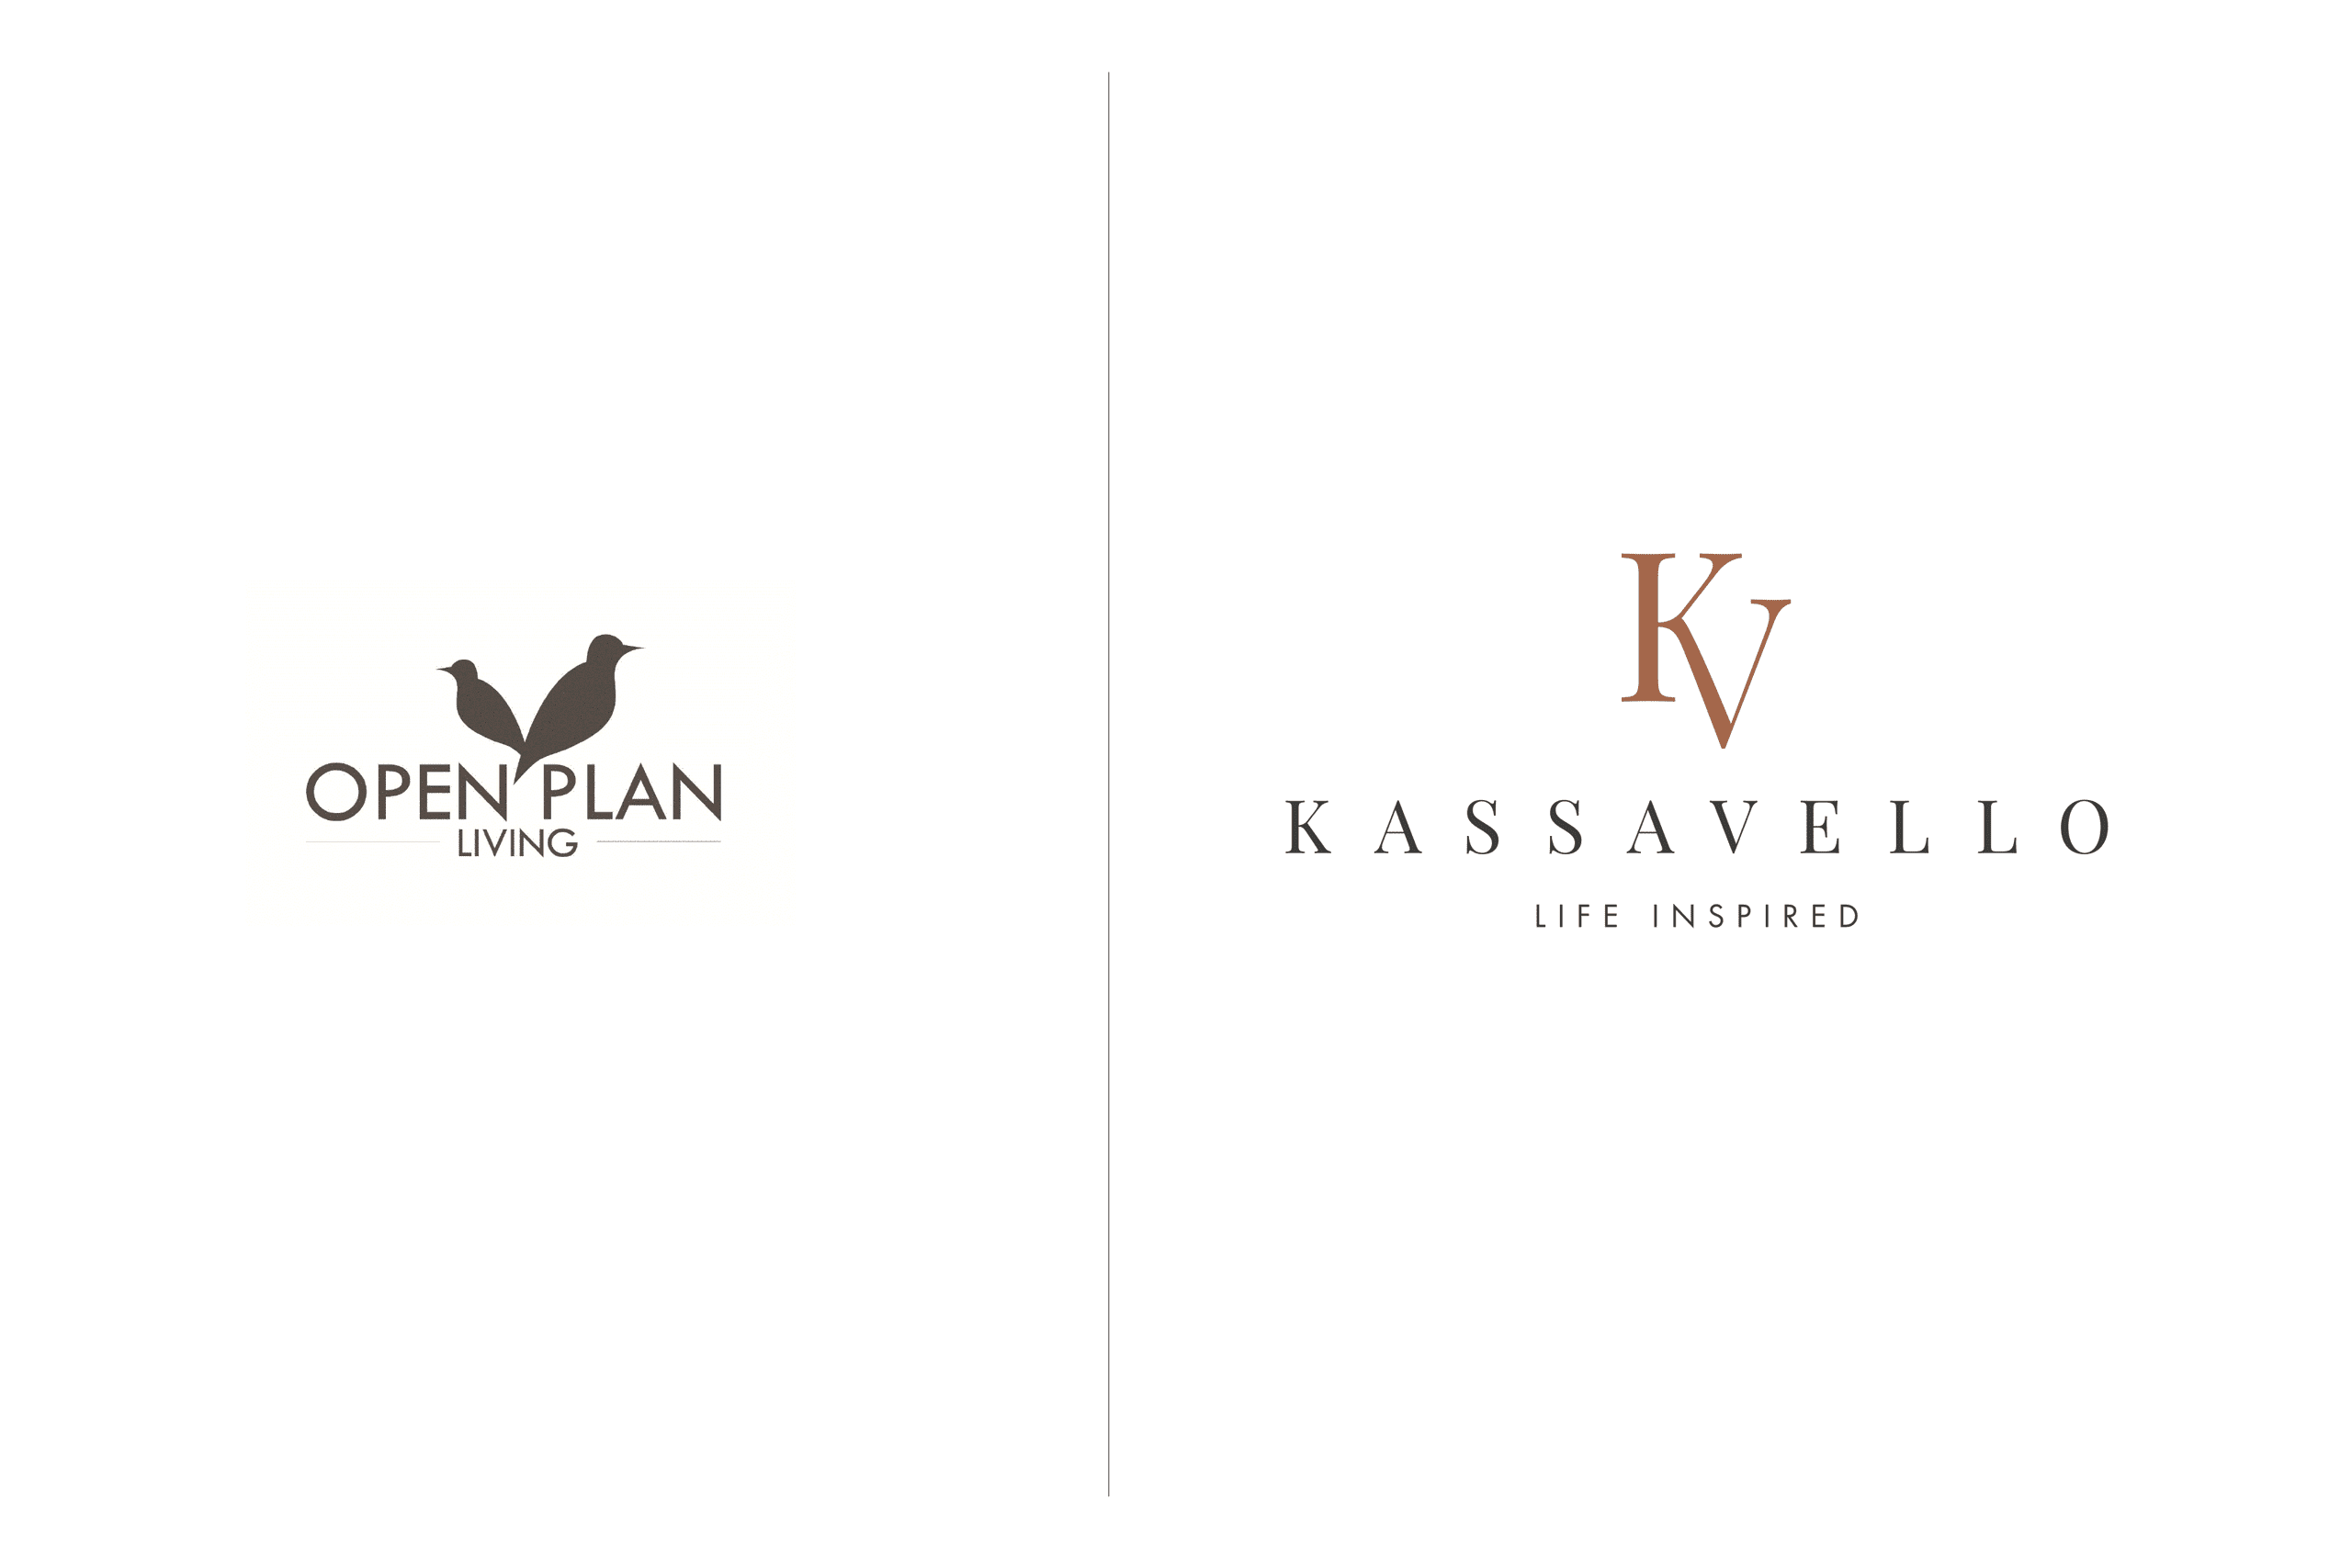 Luxury Brand S Taglines For Interior Design And Property Clients